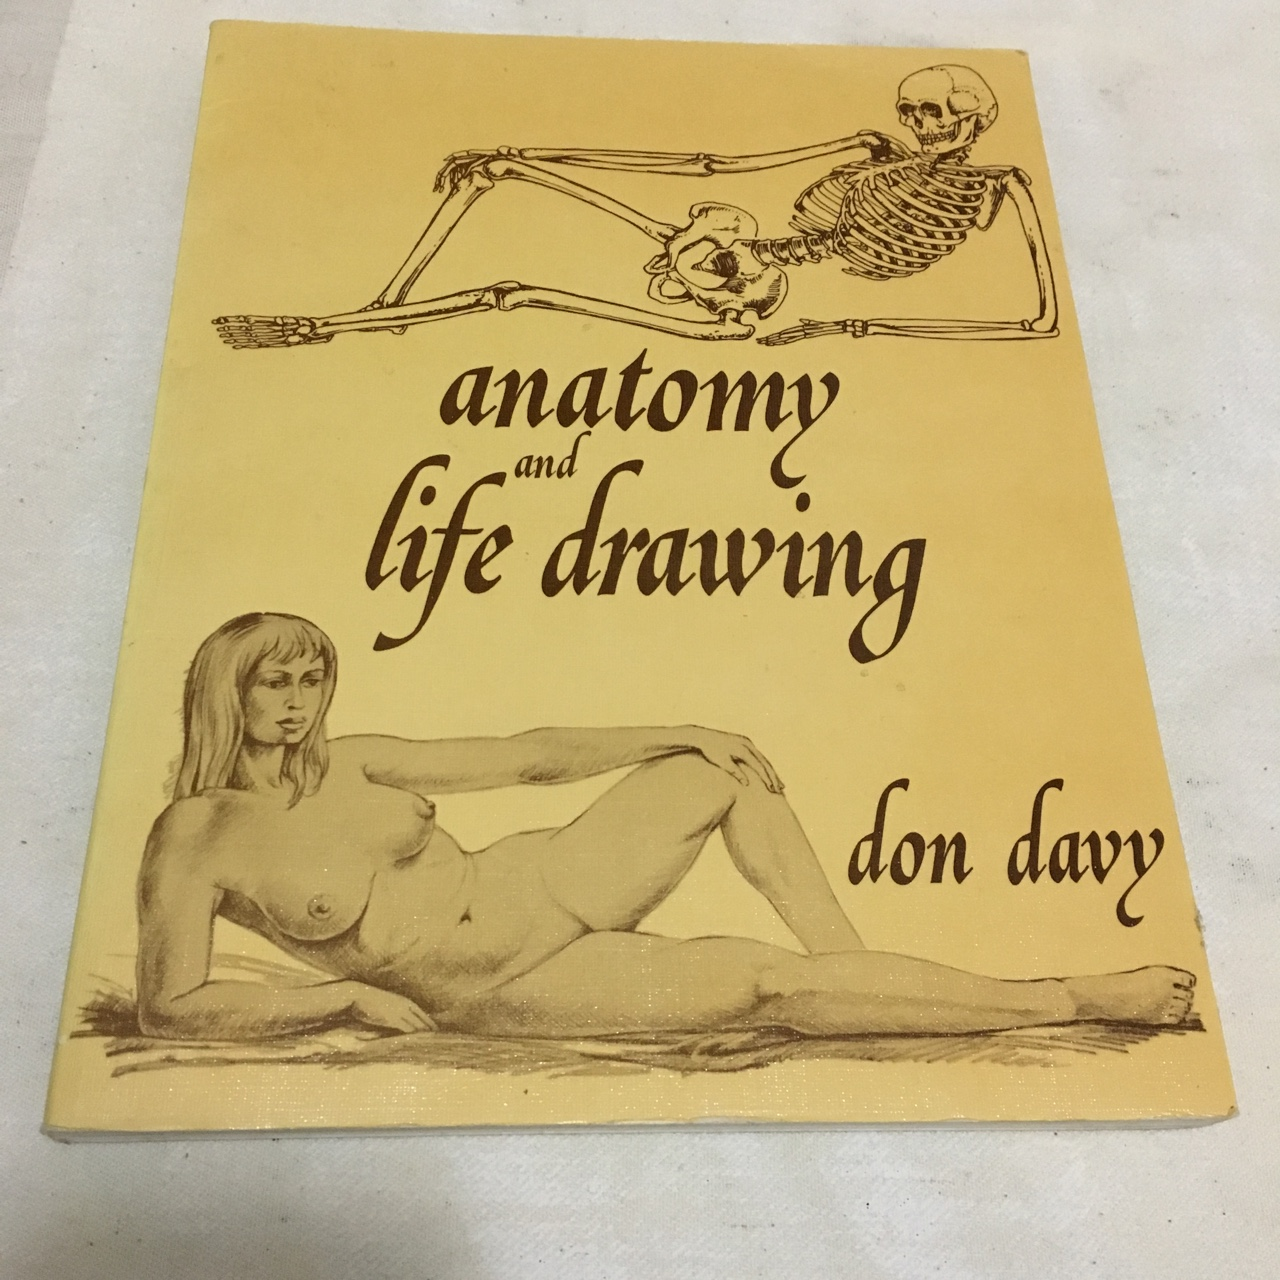 gr8 reference book for anatomy and life drawing     - Depop